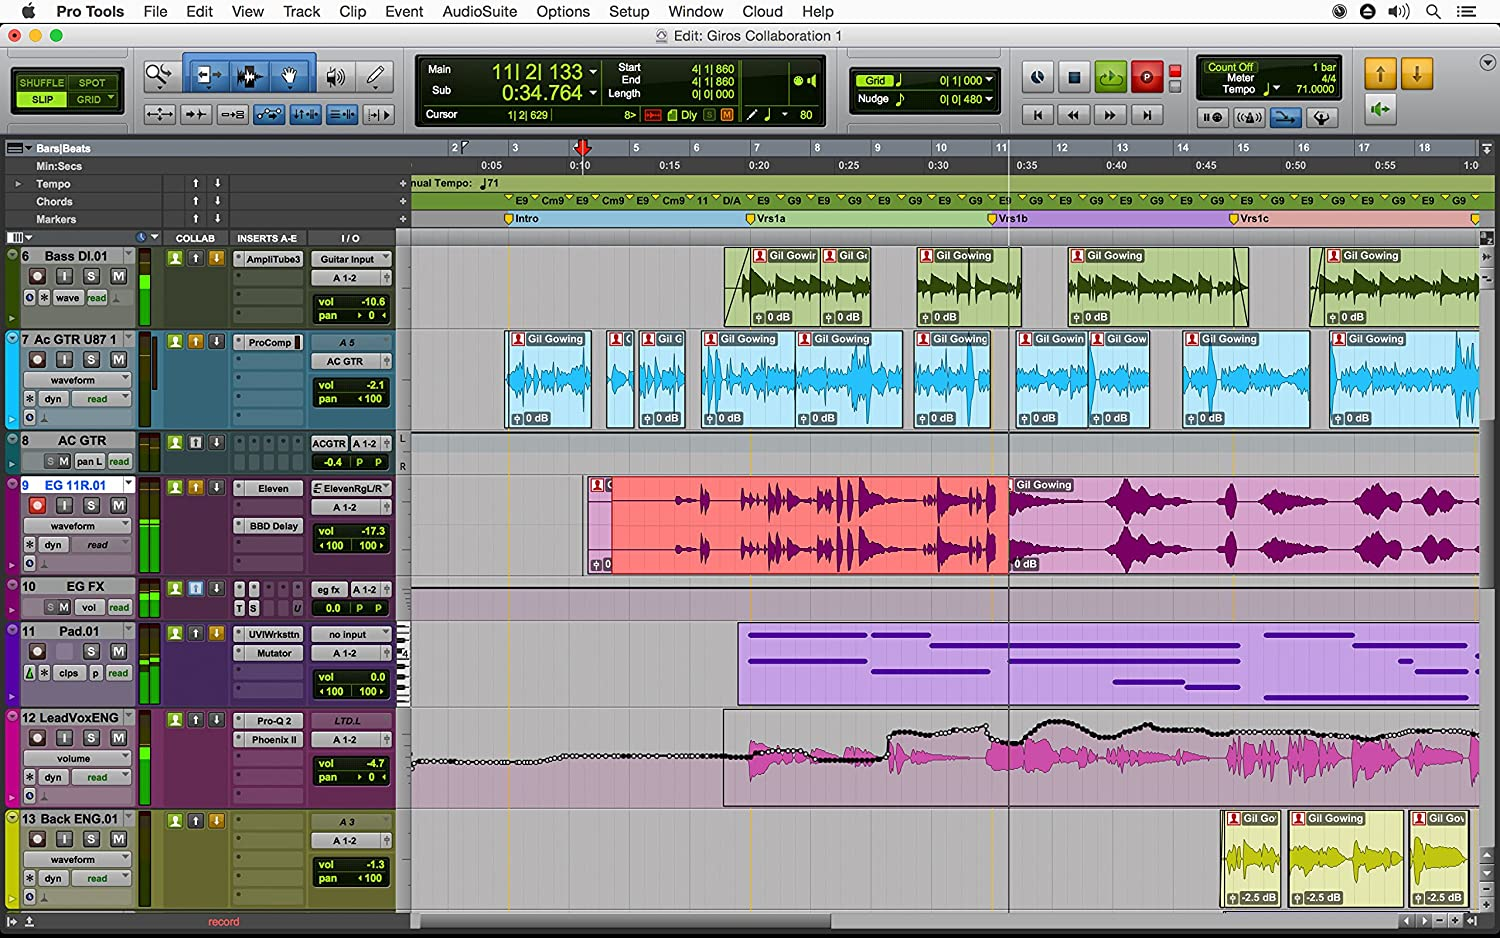 Pro Tools 12 Professional Annual Subscription Avid